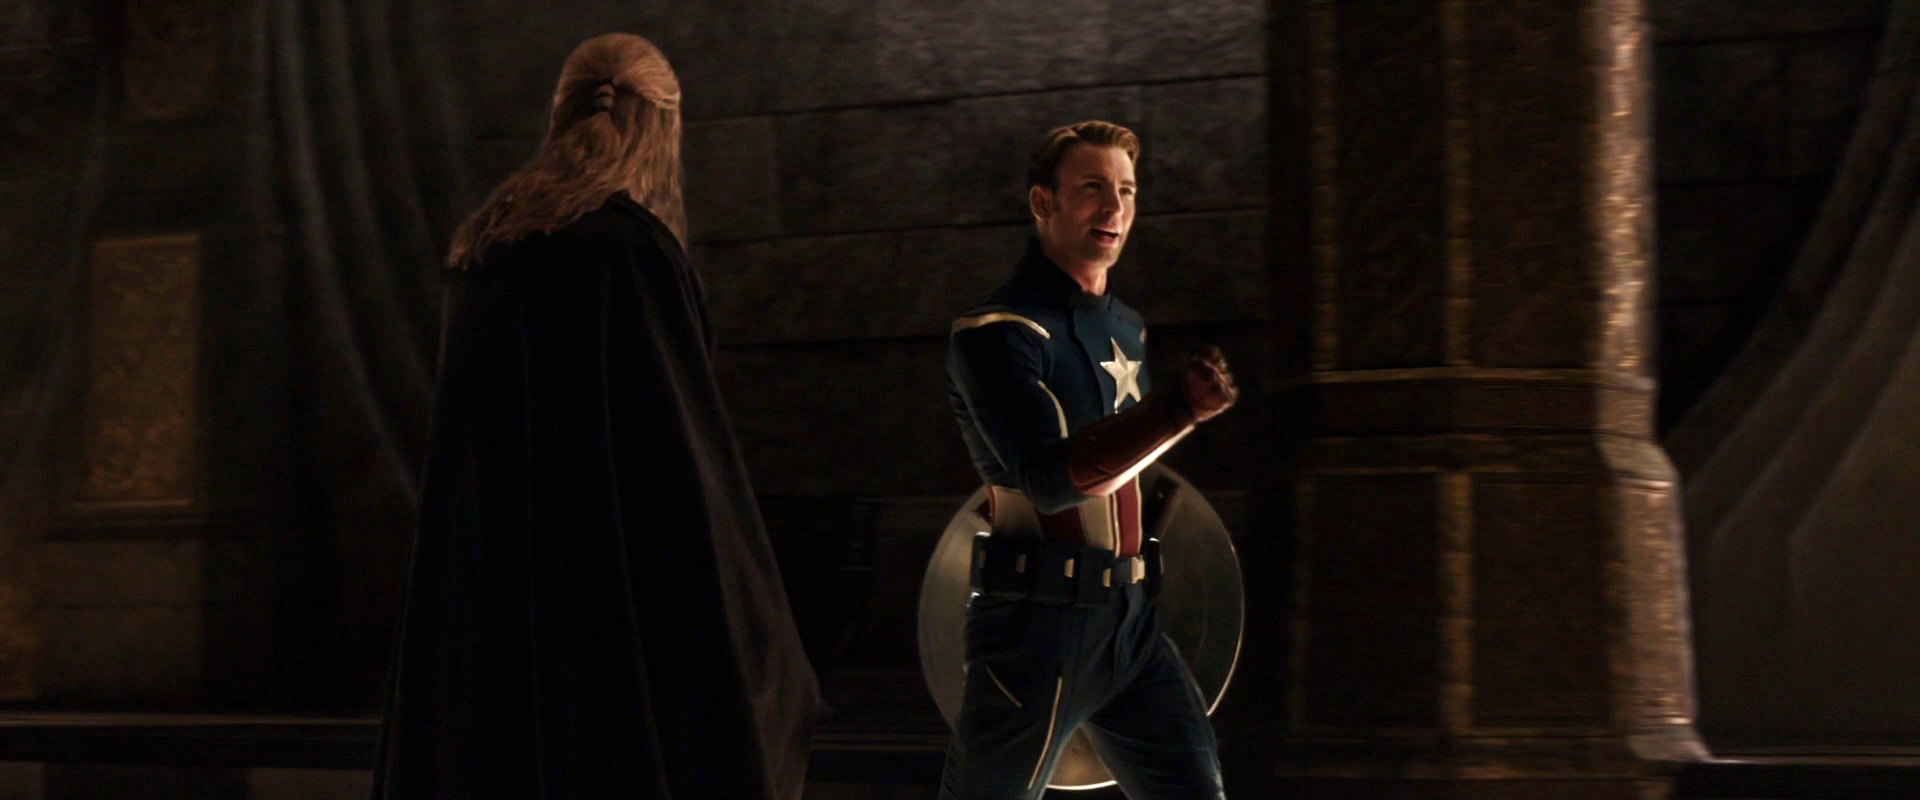 Captain America cameos in every movie, please!